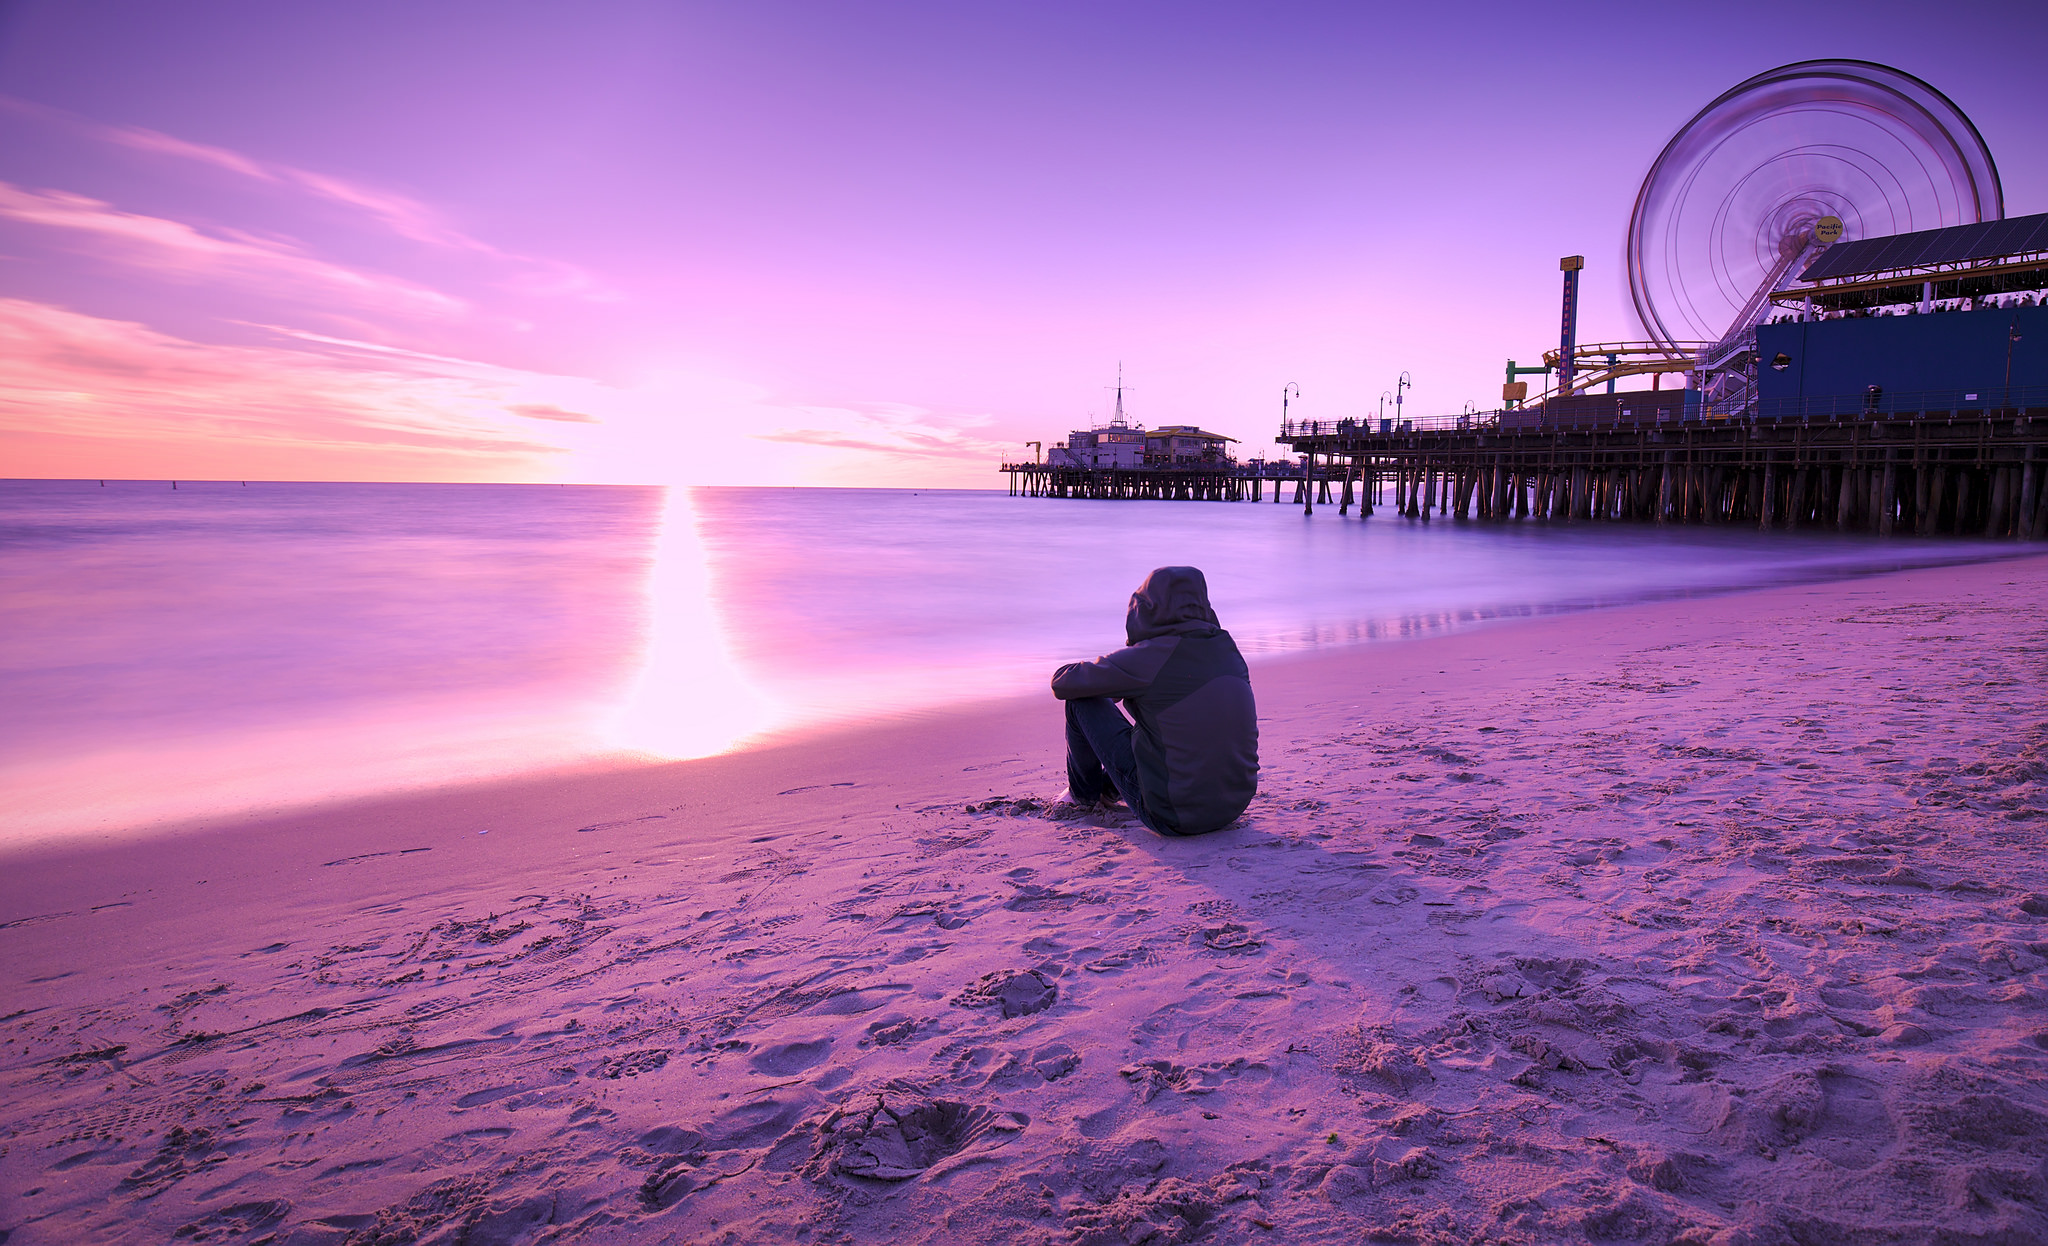 Alone Girl In Beach Wallpaper The Science Of Loneliness Lonely People S Brains Perceive